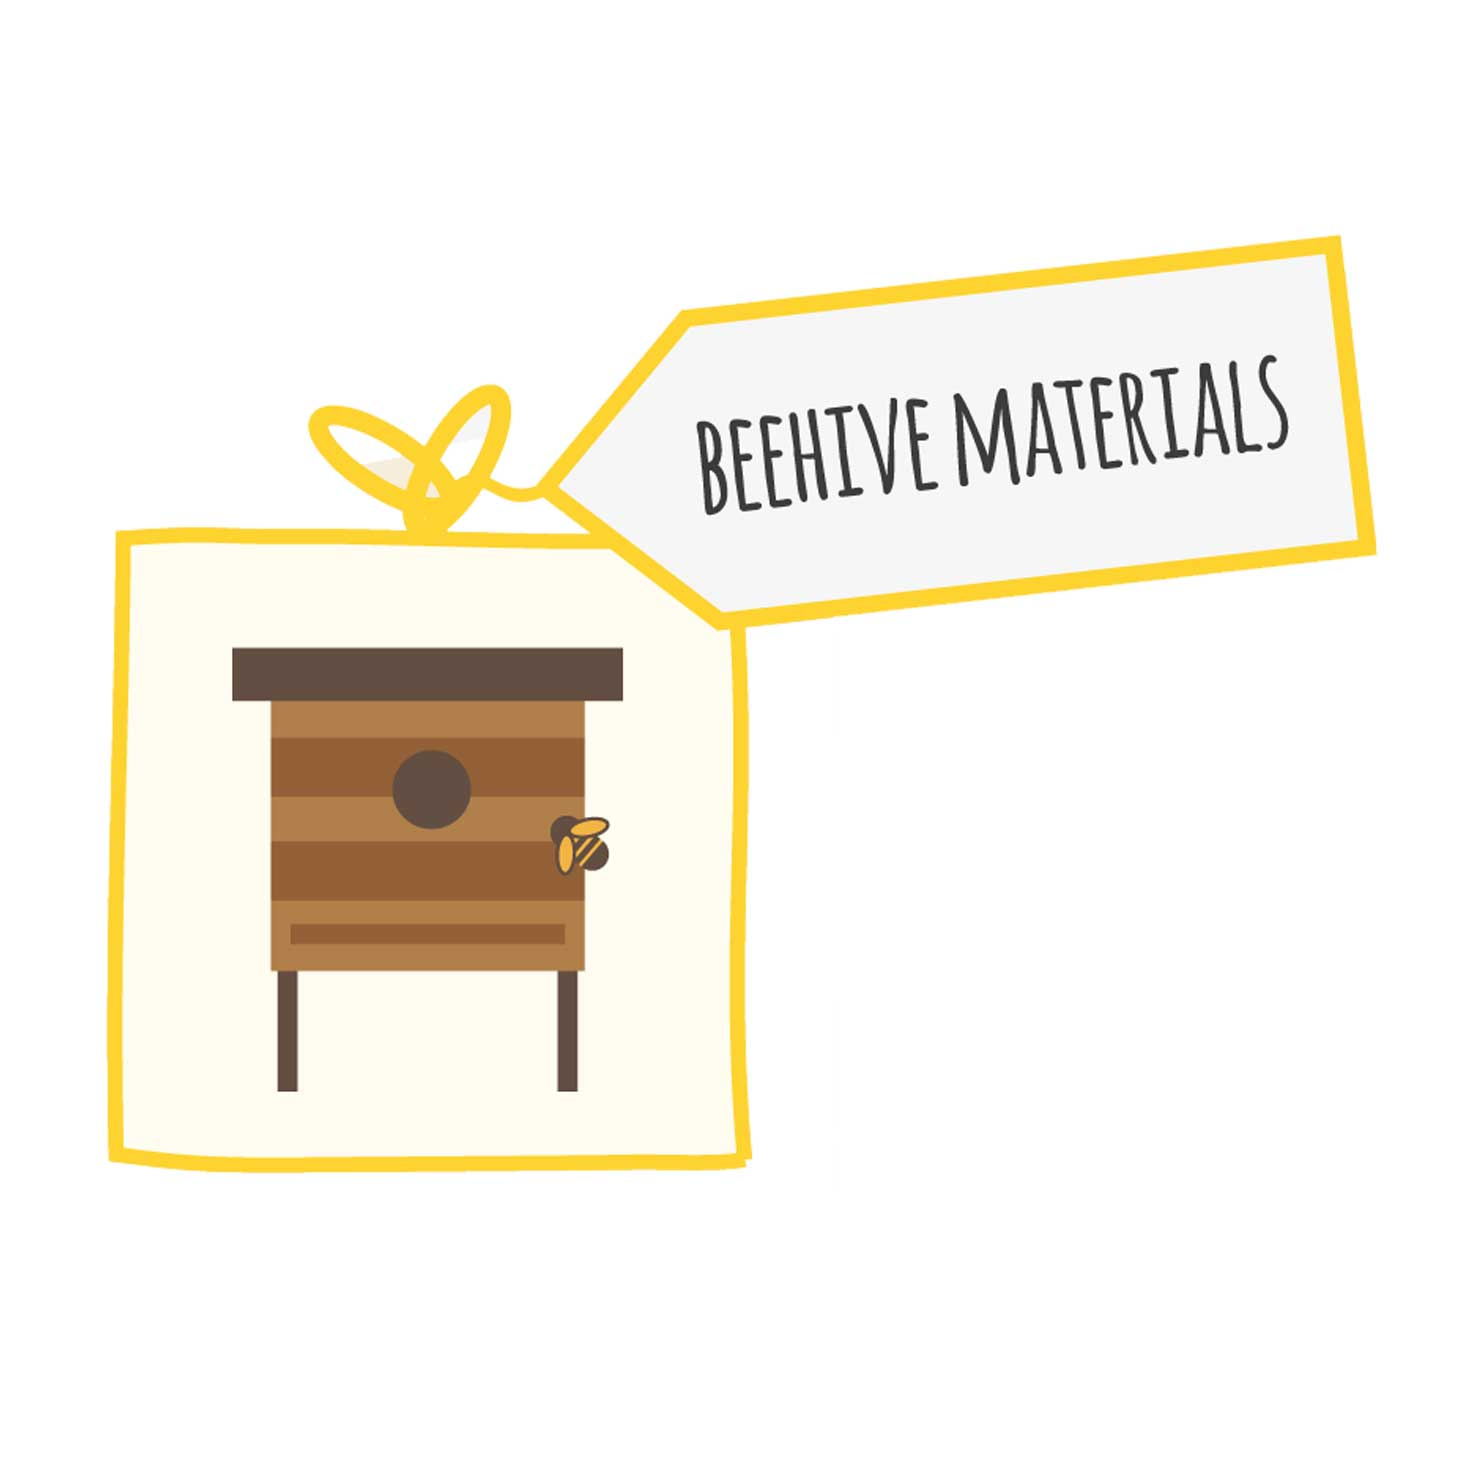 Beehive Materials